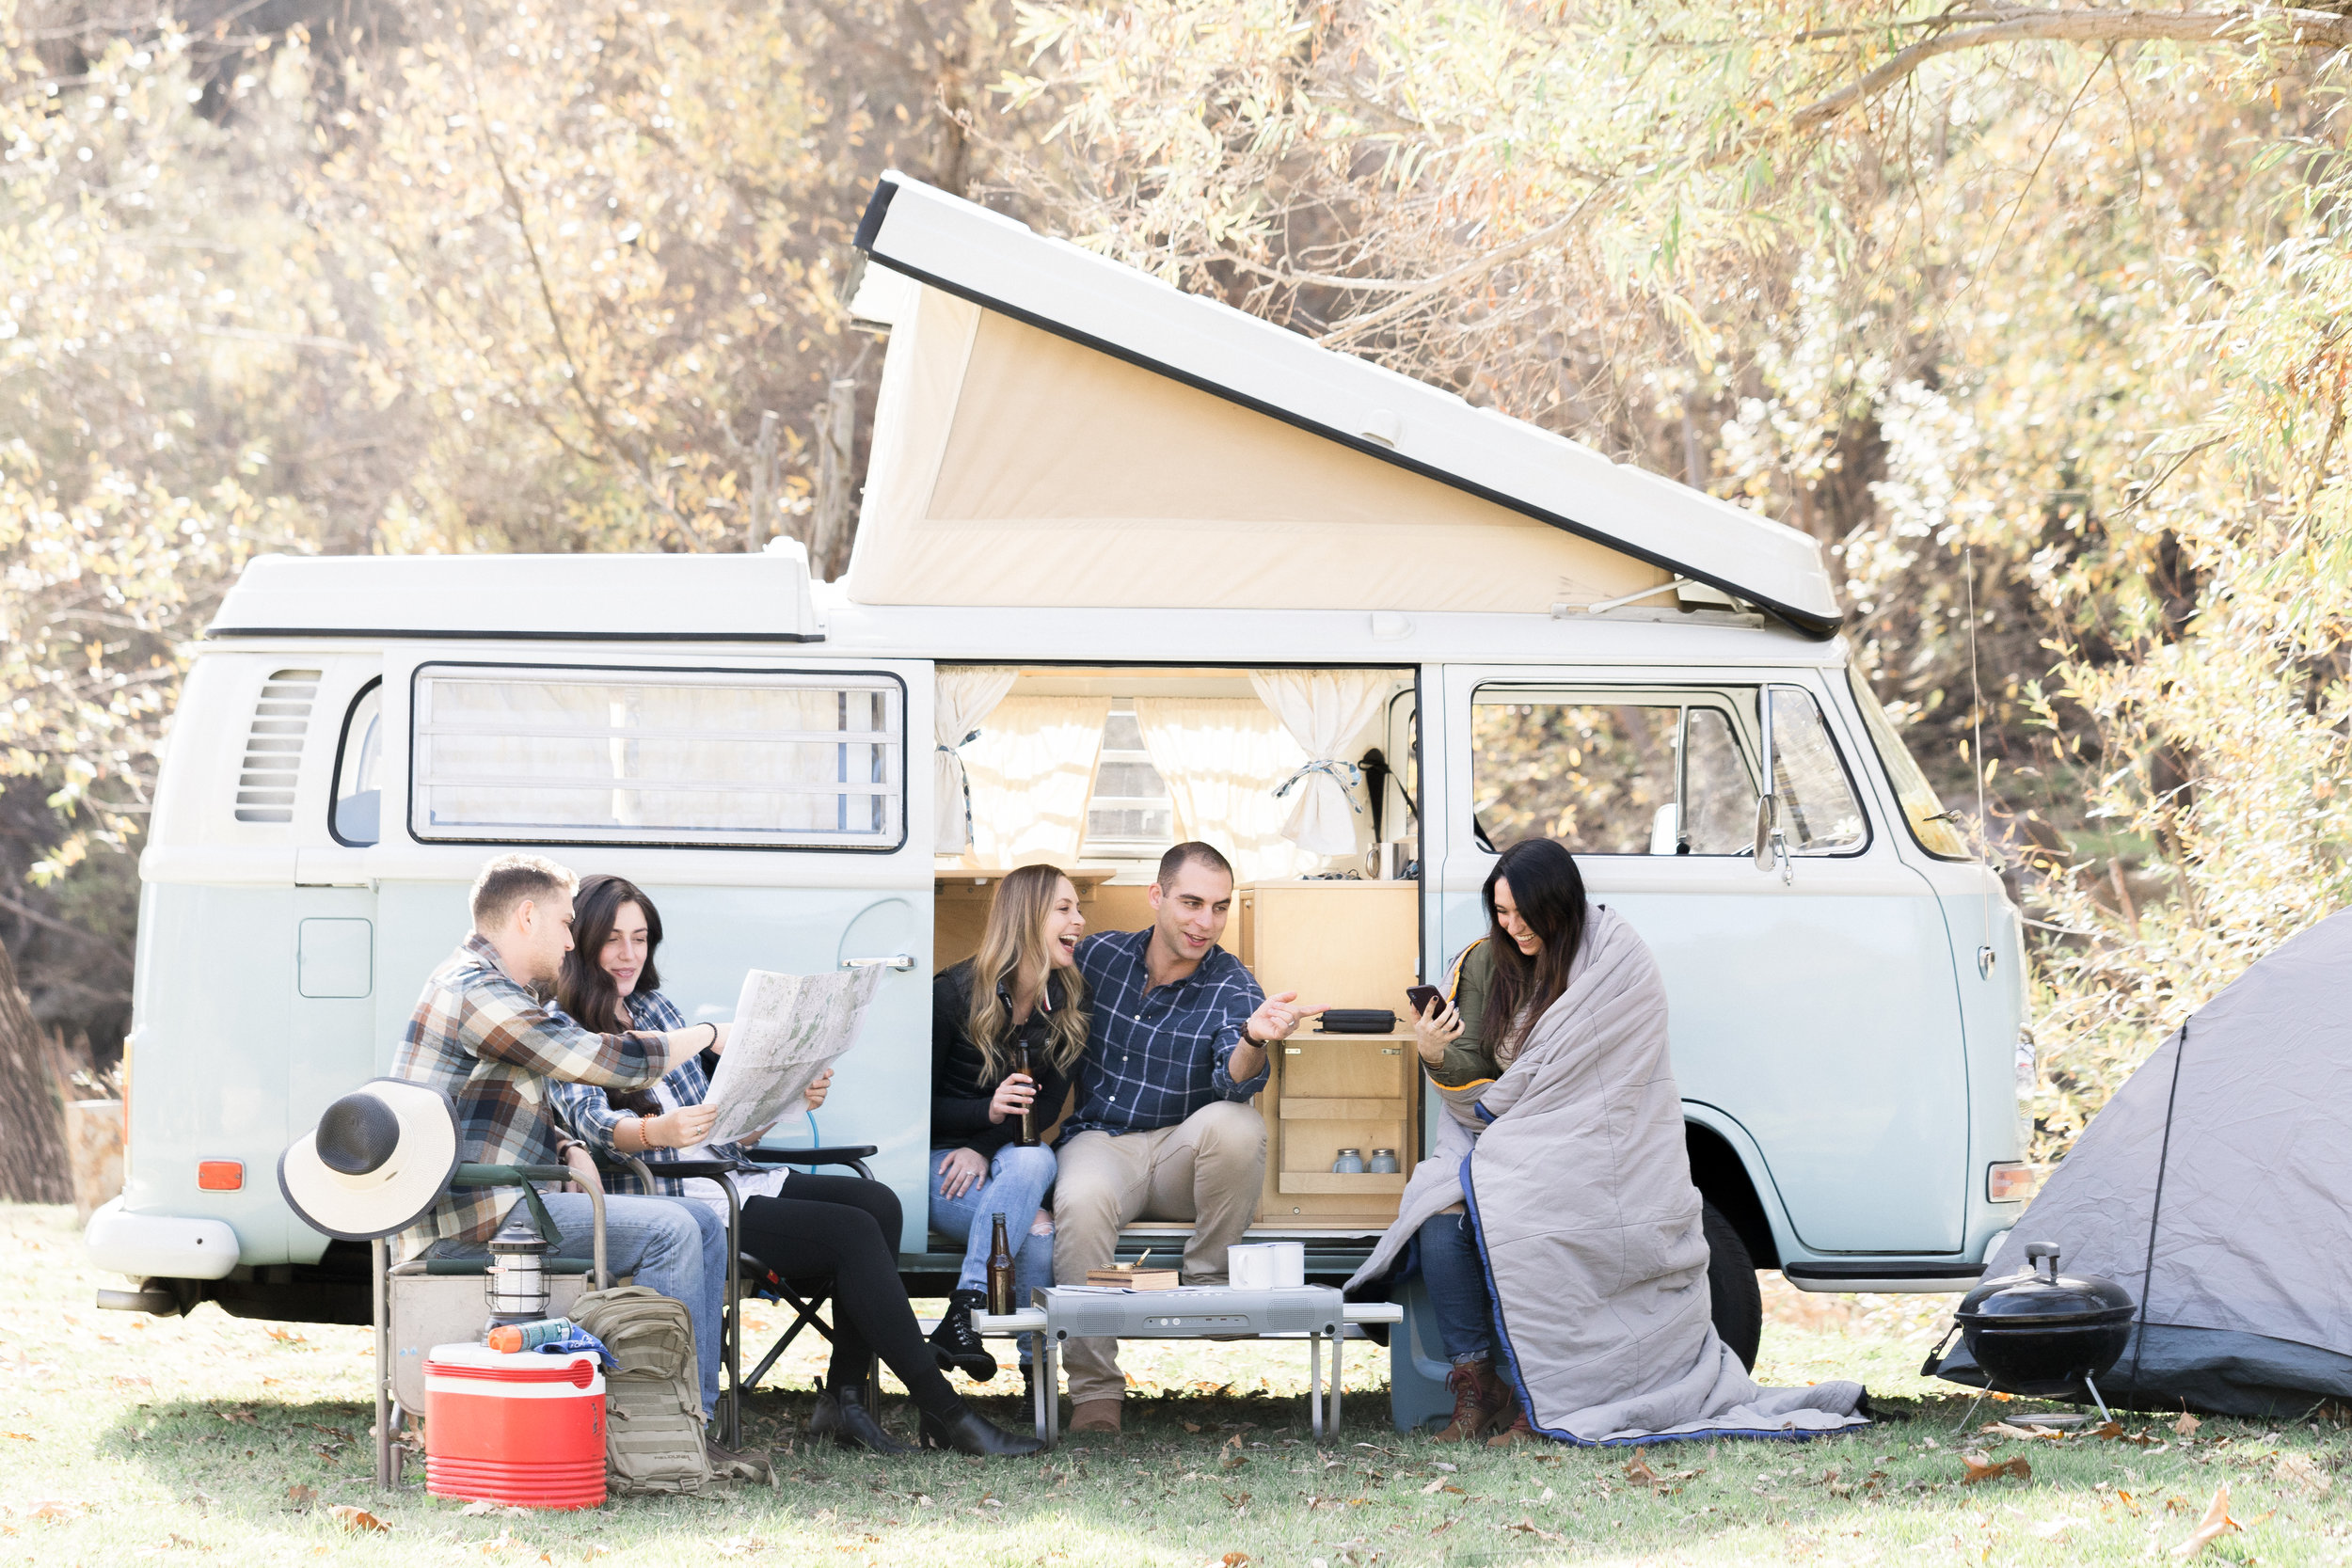 Chico-destination-camping-with-friends.jpg